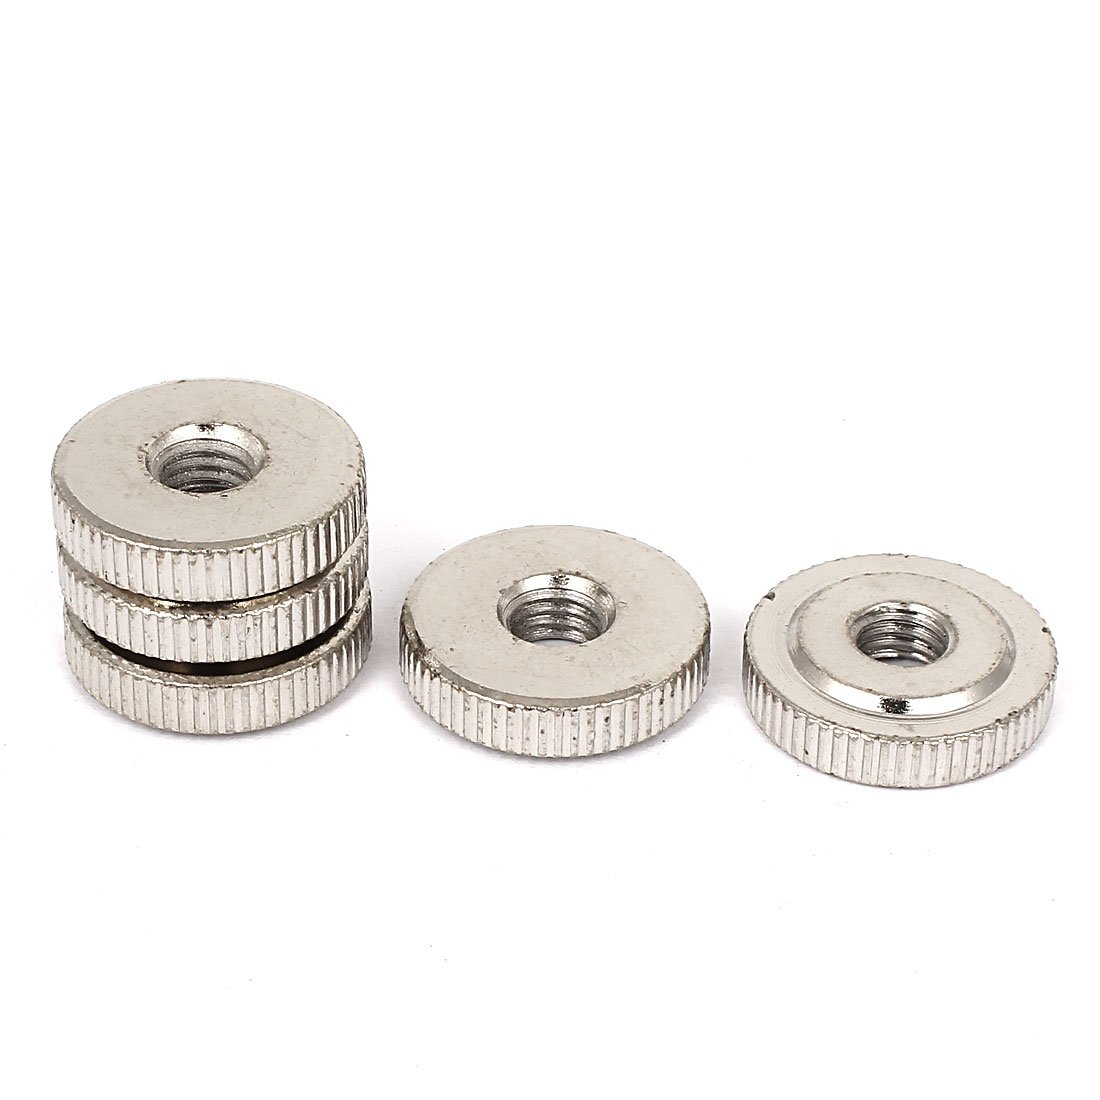 uxcellM8 x 24mm Nickel Plated Thin Type Knurled Thumb Nuts DIN 467 5 Pcs a16050300ux0504